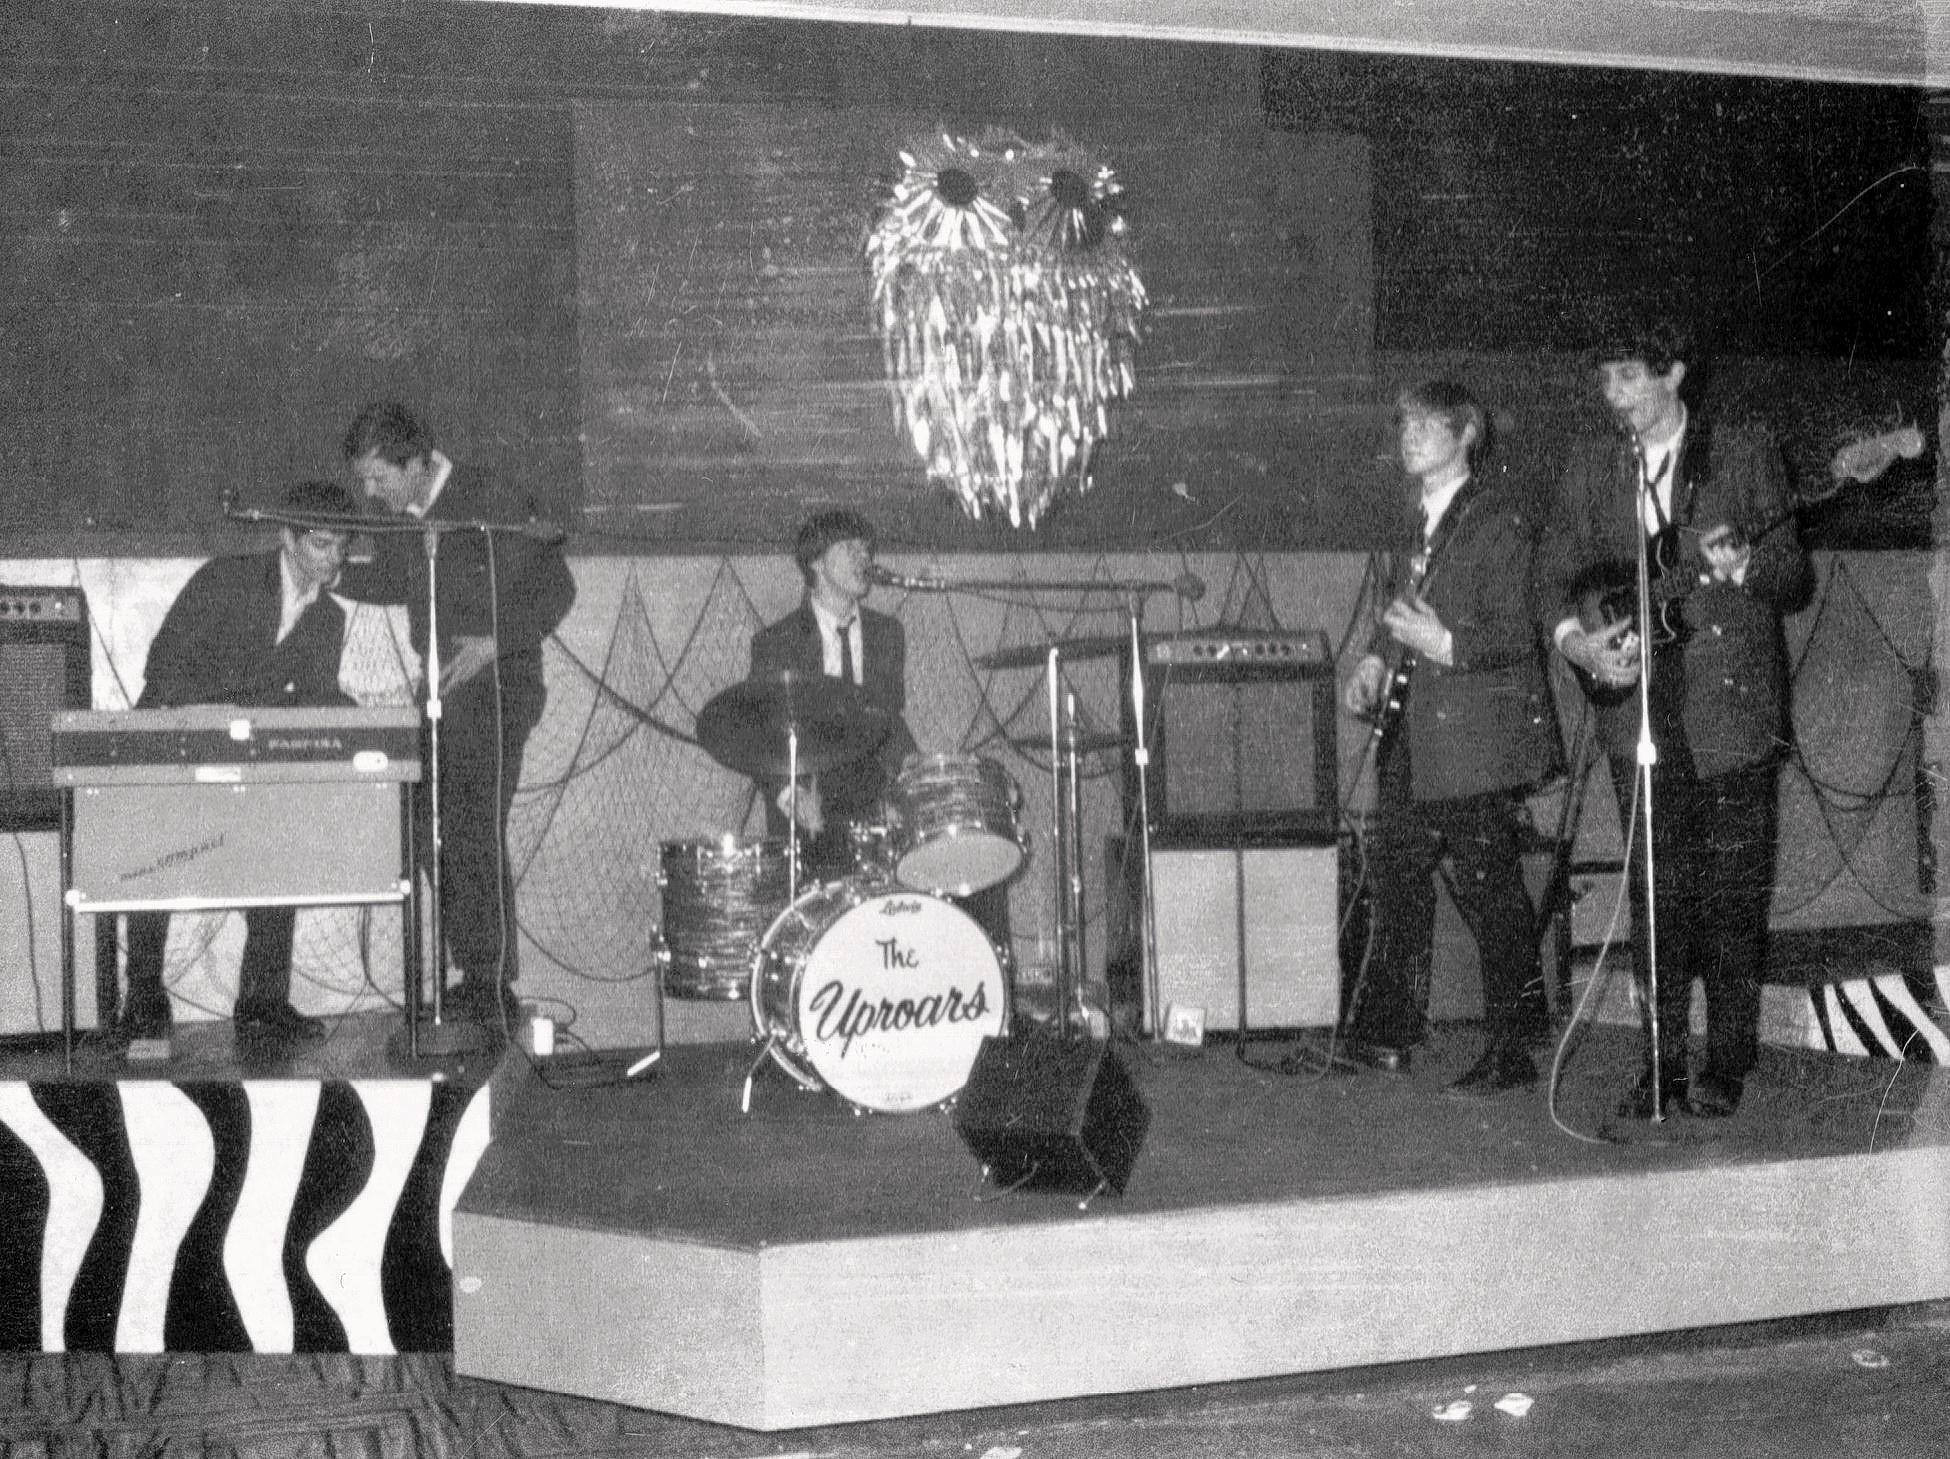 The Uproars played at the Purple Owl 1966-67.